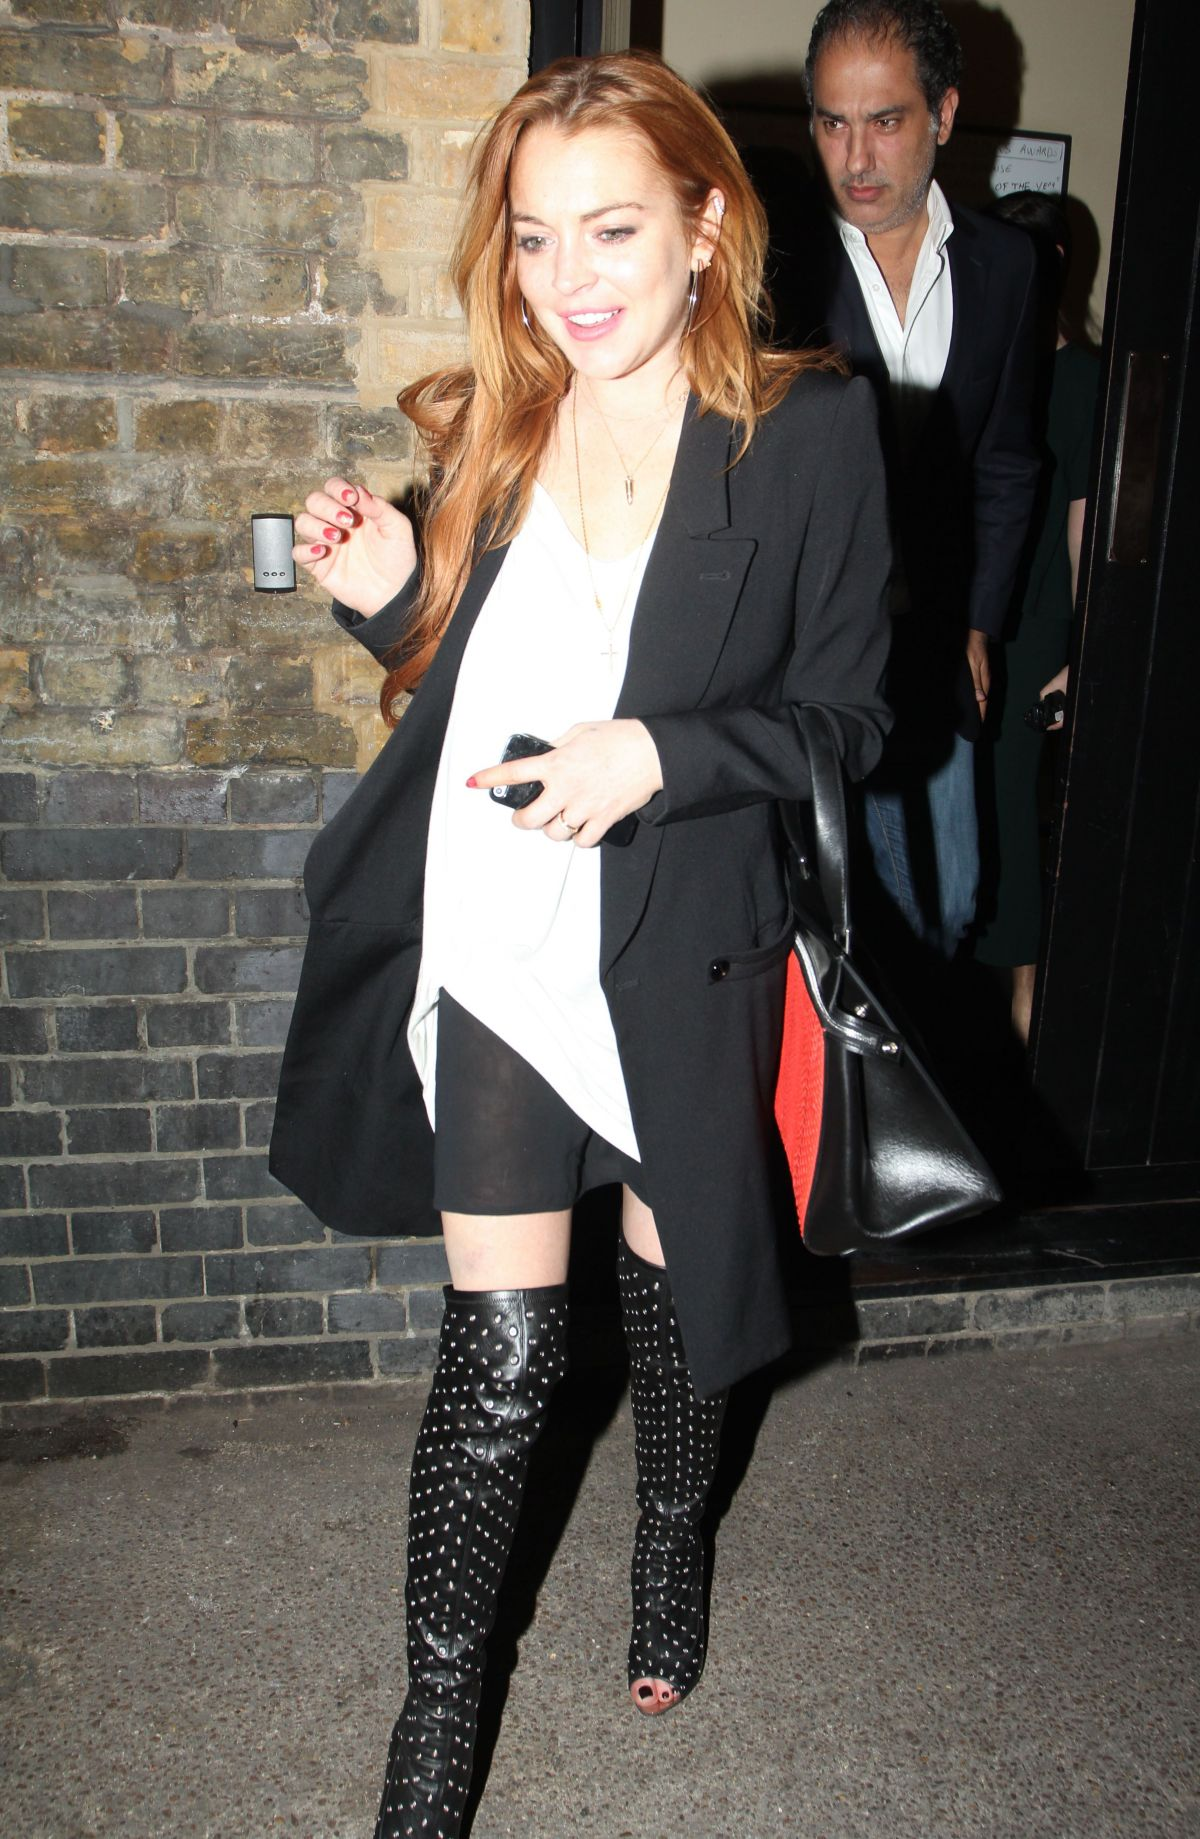 Lindsay Lohan At Chiltern Firehouse